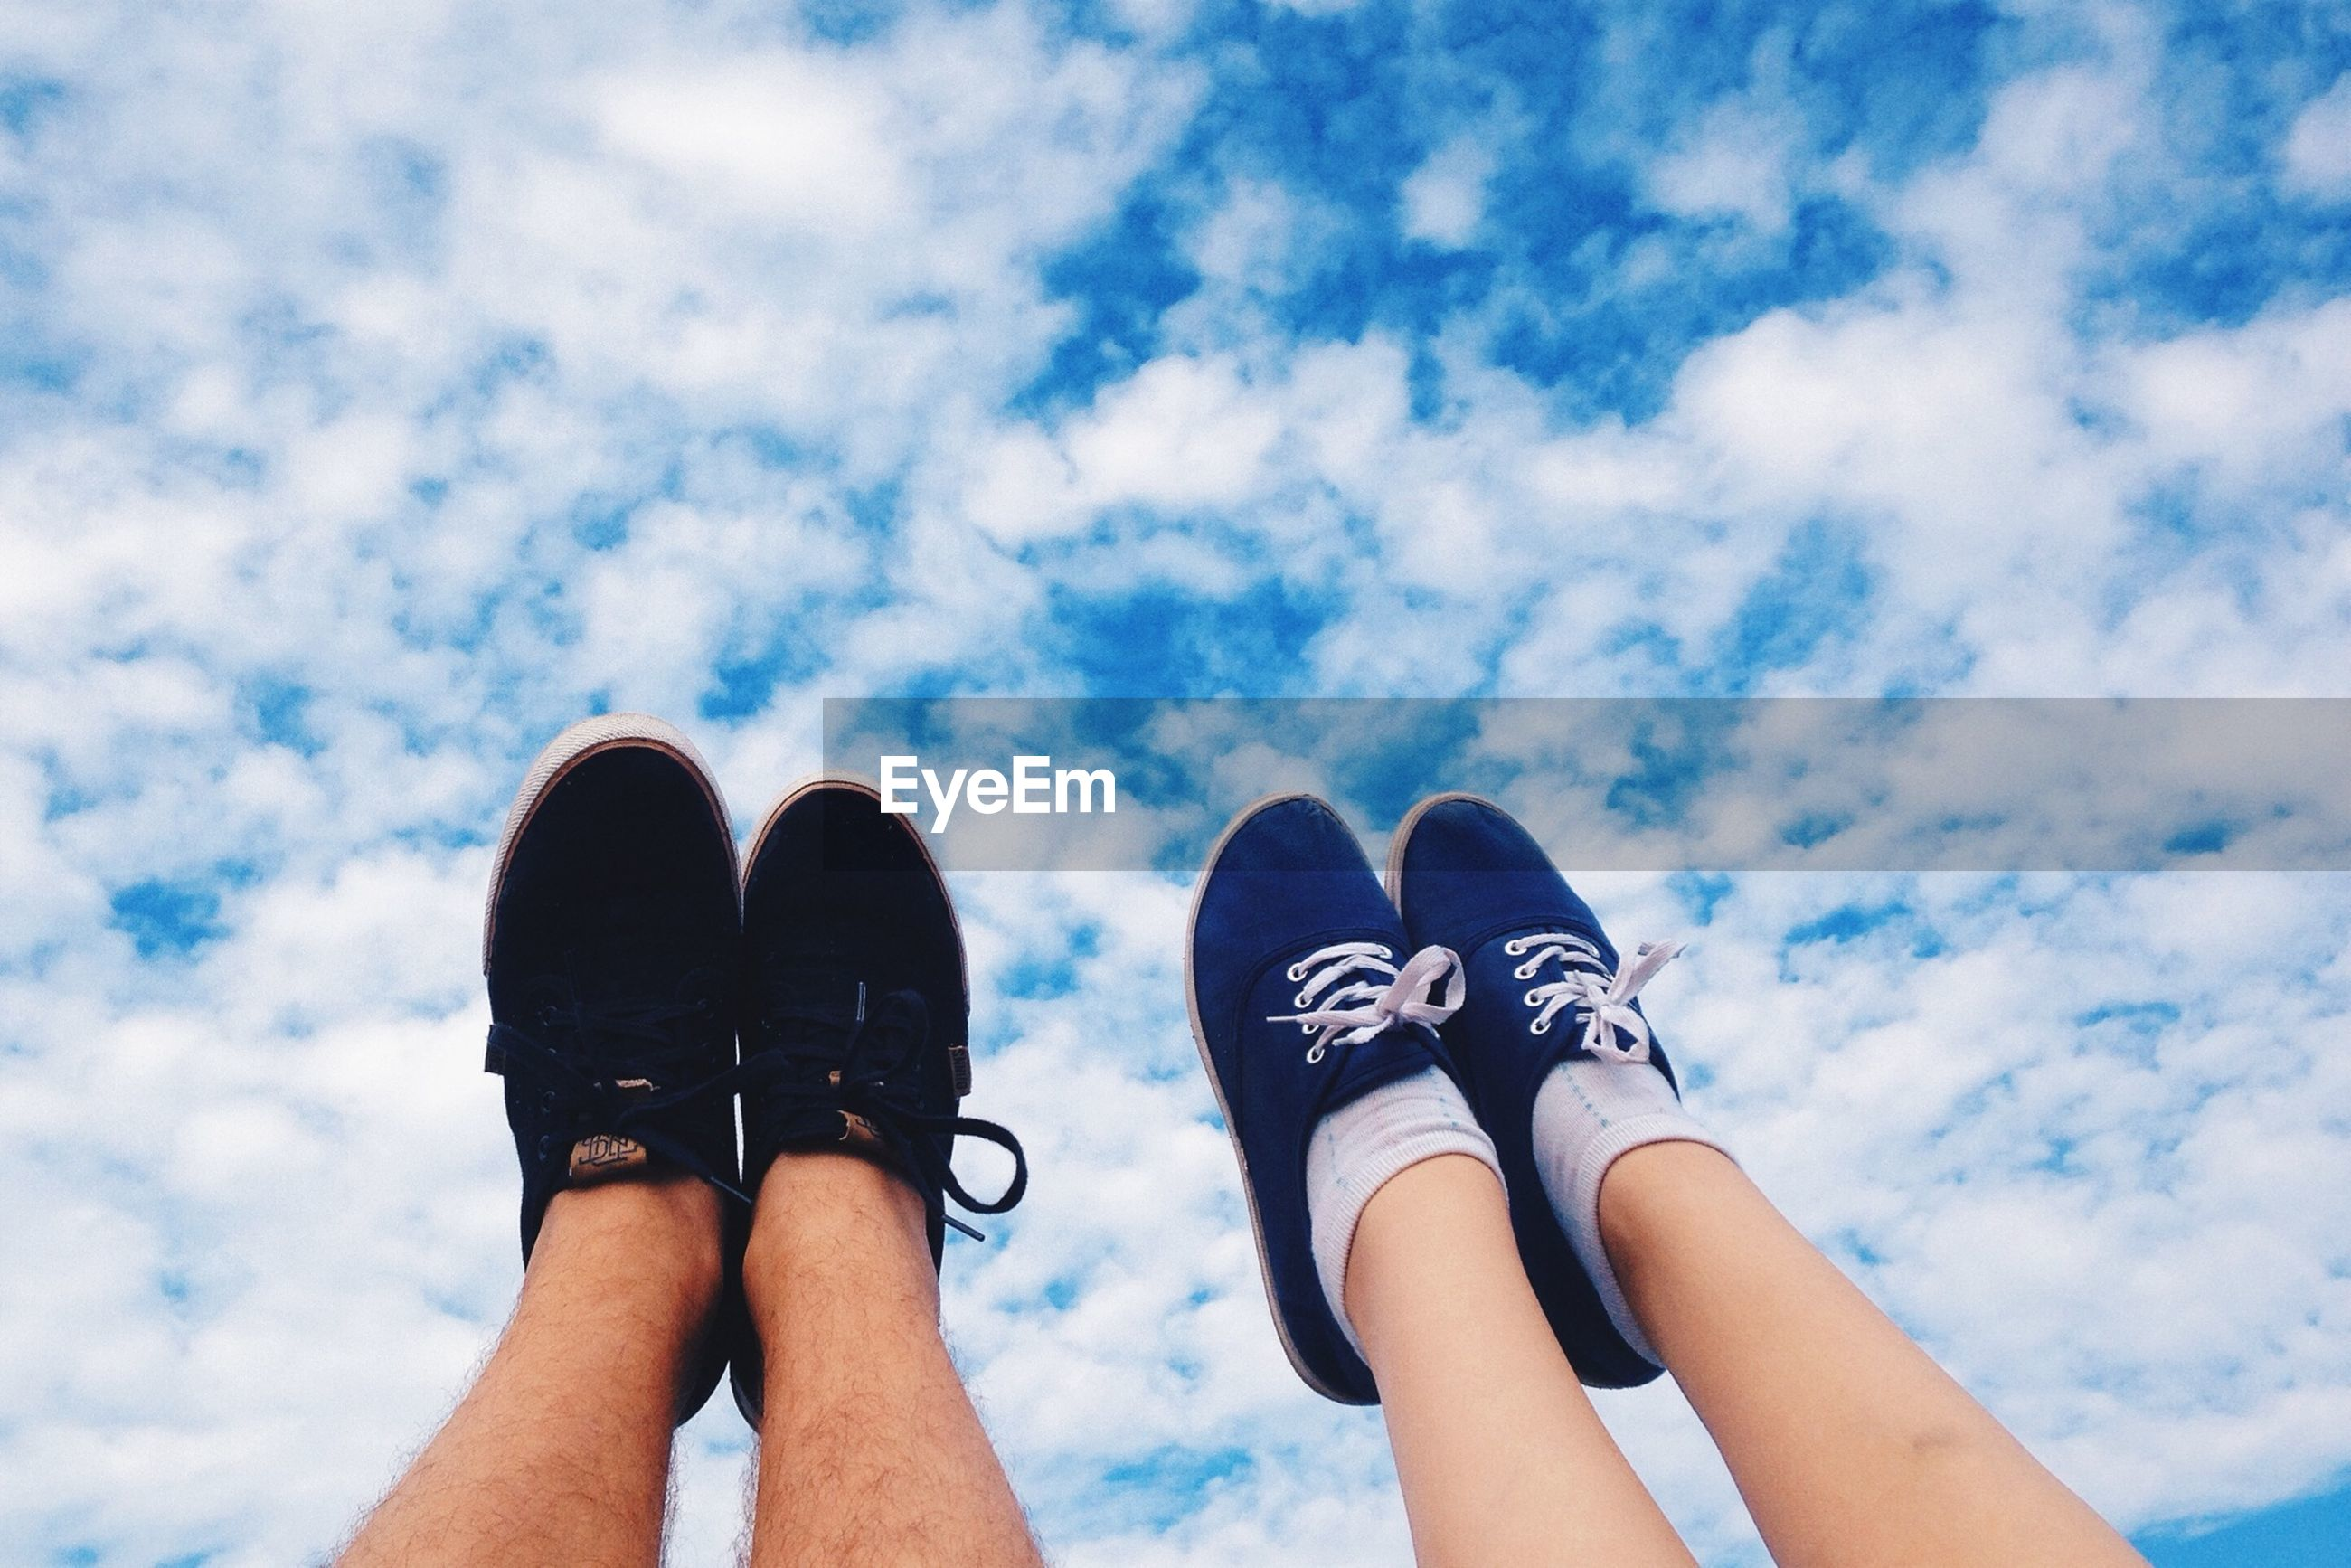 low section, person, personal perspective, lifestyles, leisure activity, togetherness, standing, human foot, sky, shoe, cloud - sky, relaxation, men, bonding, friendship